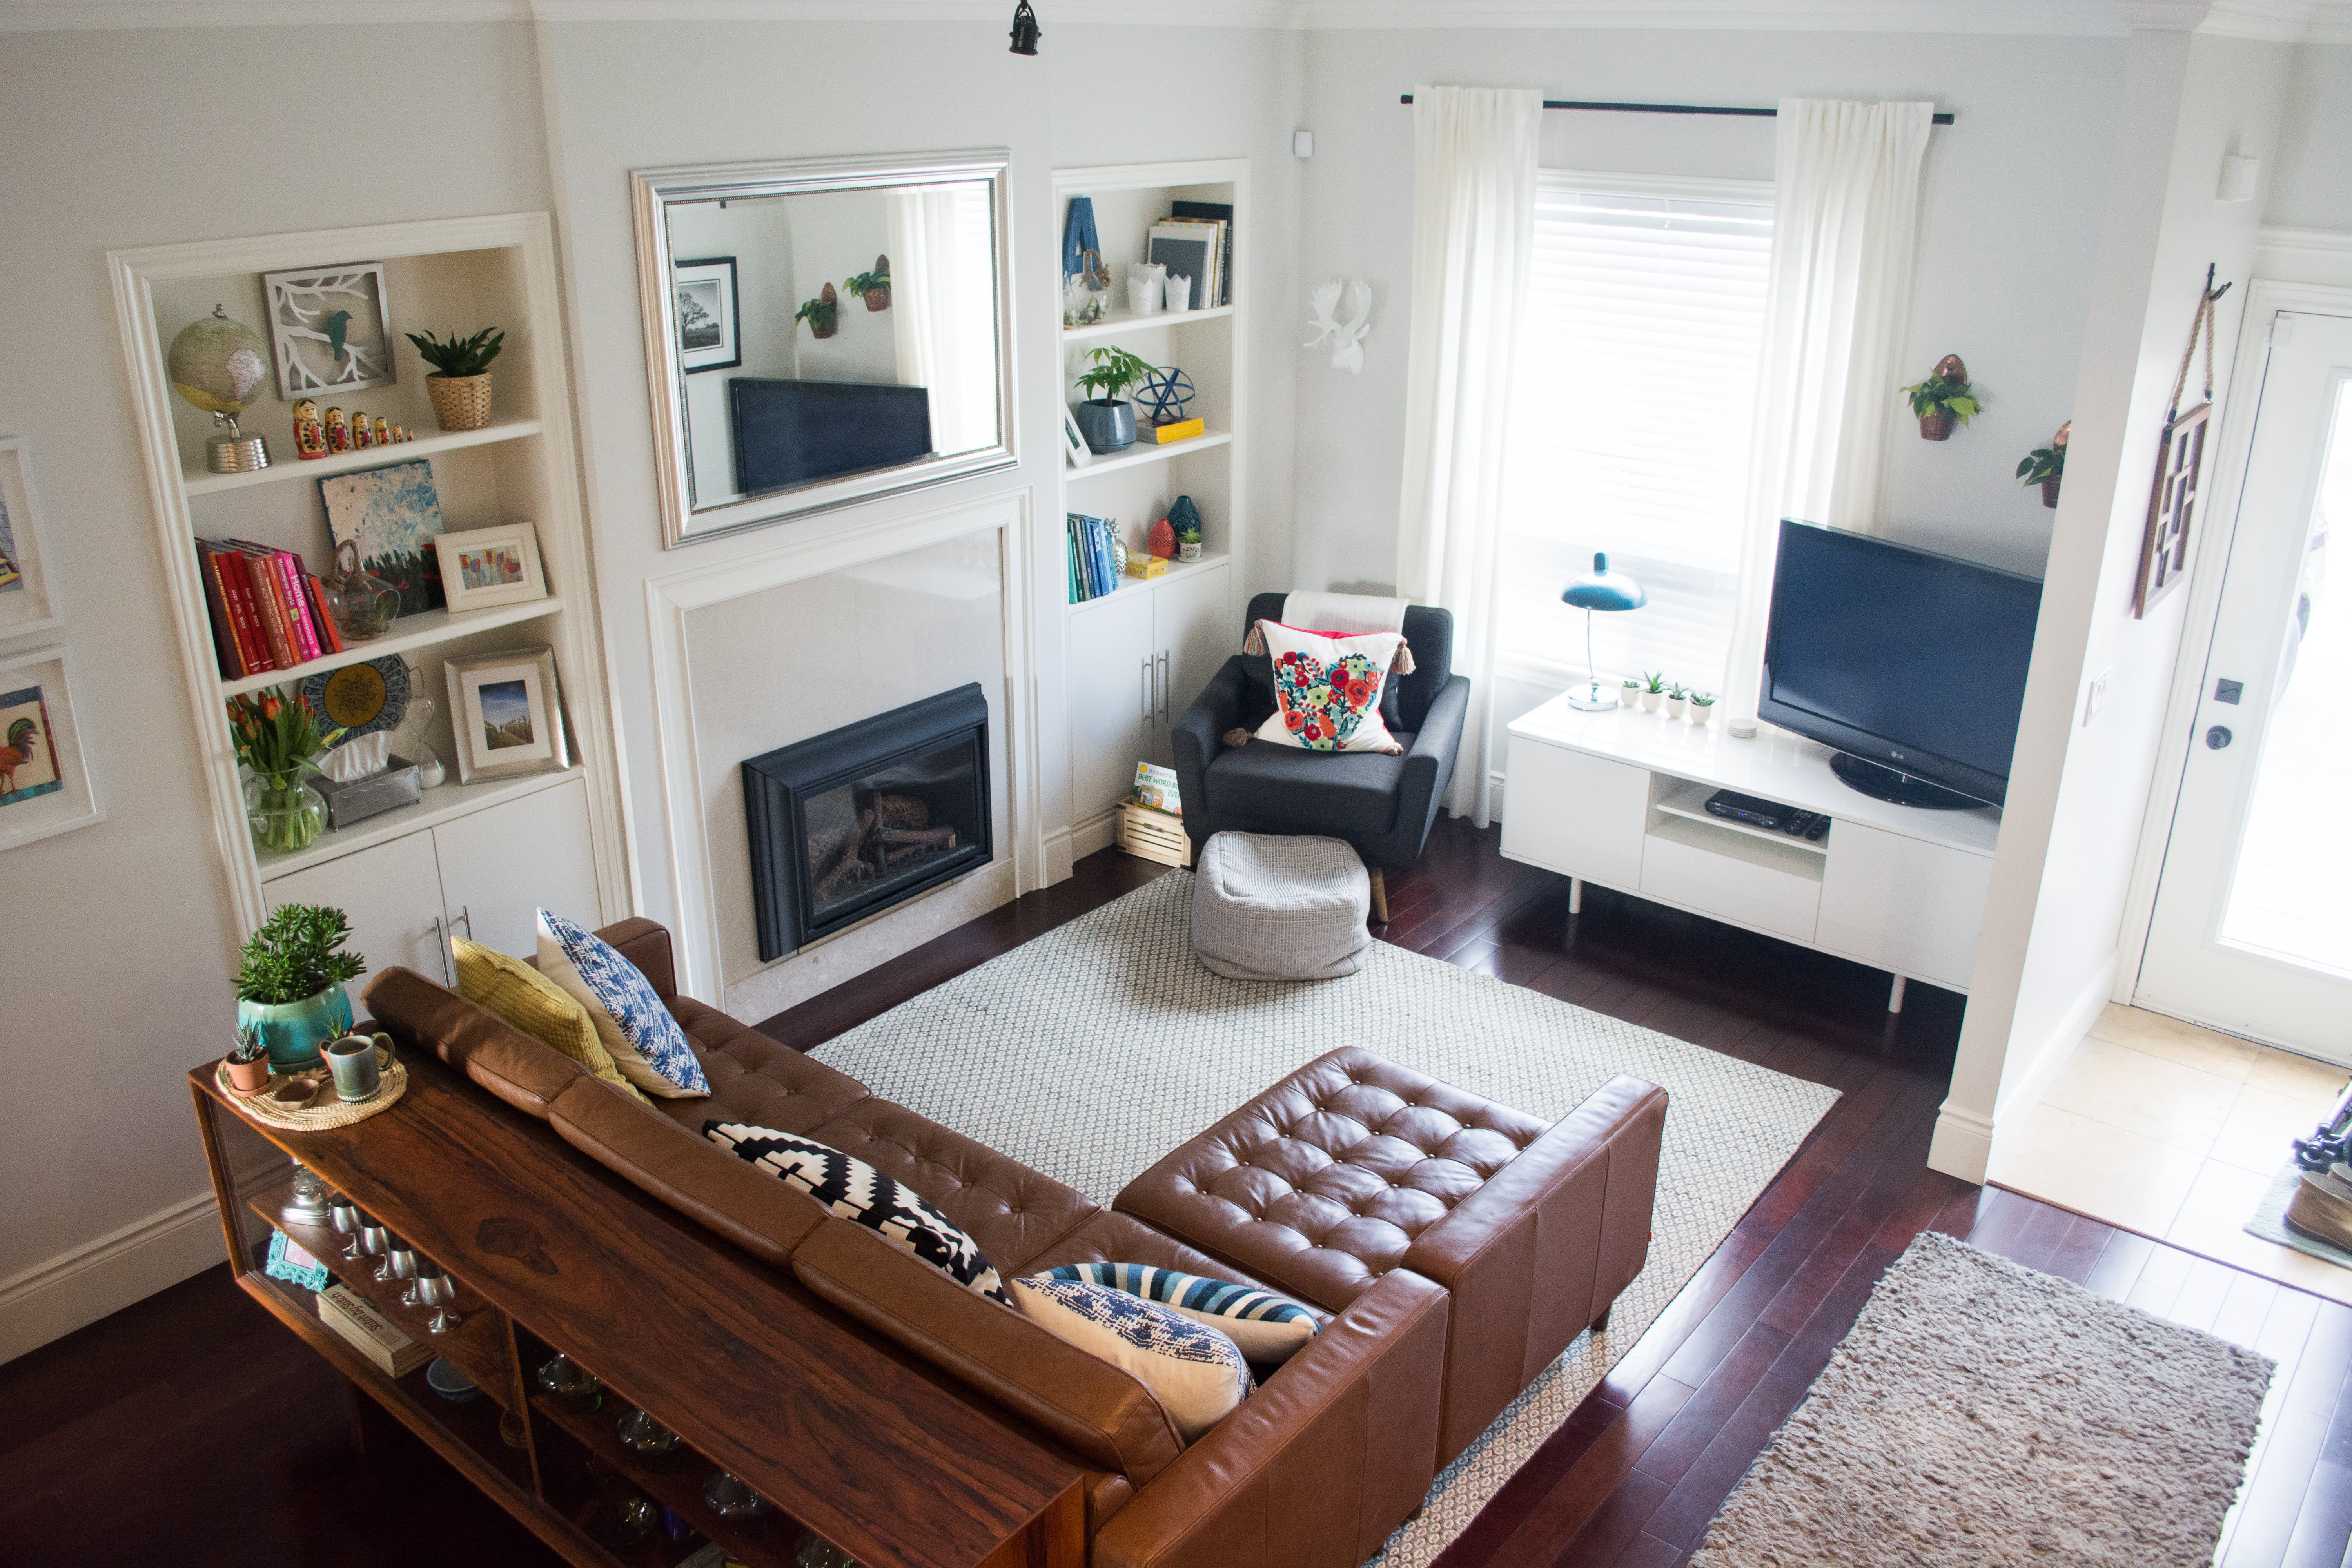 House Tour: A Vintage-Filled Toronto Home | Apartment Therapy